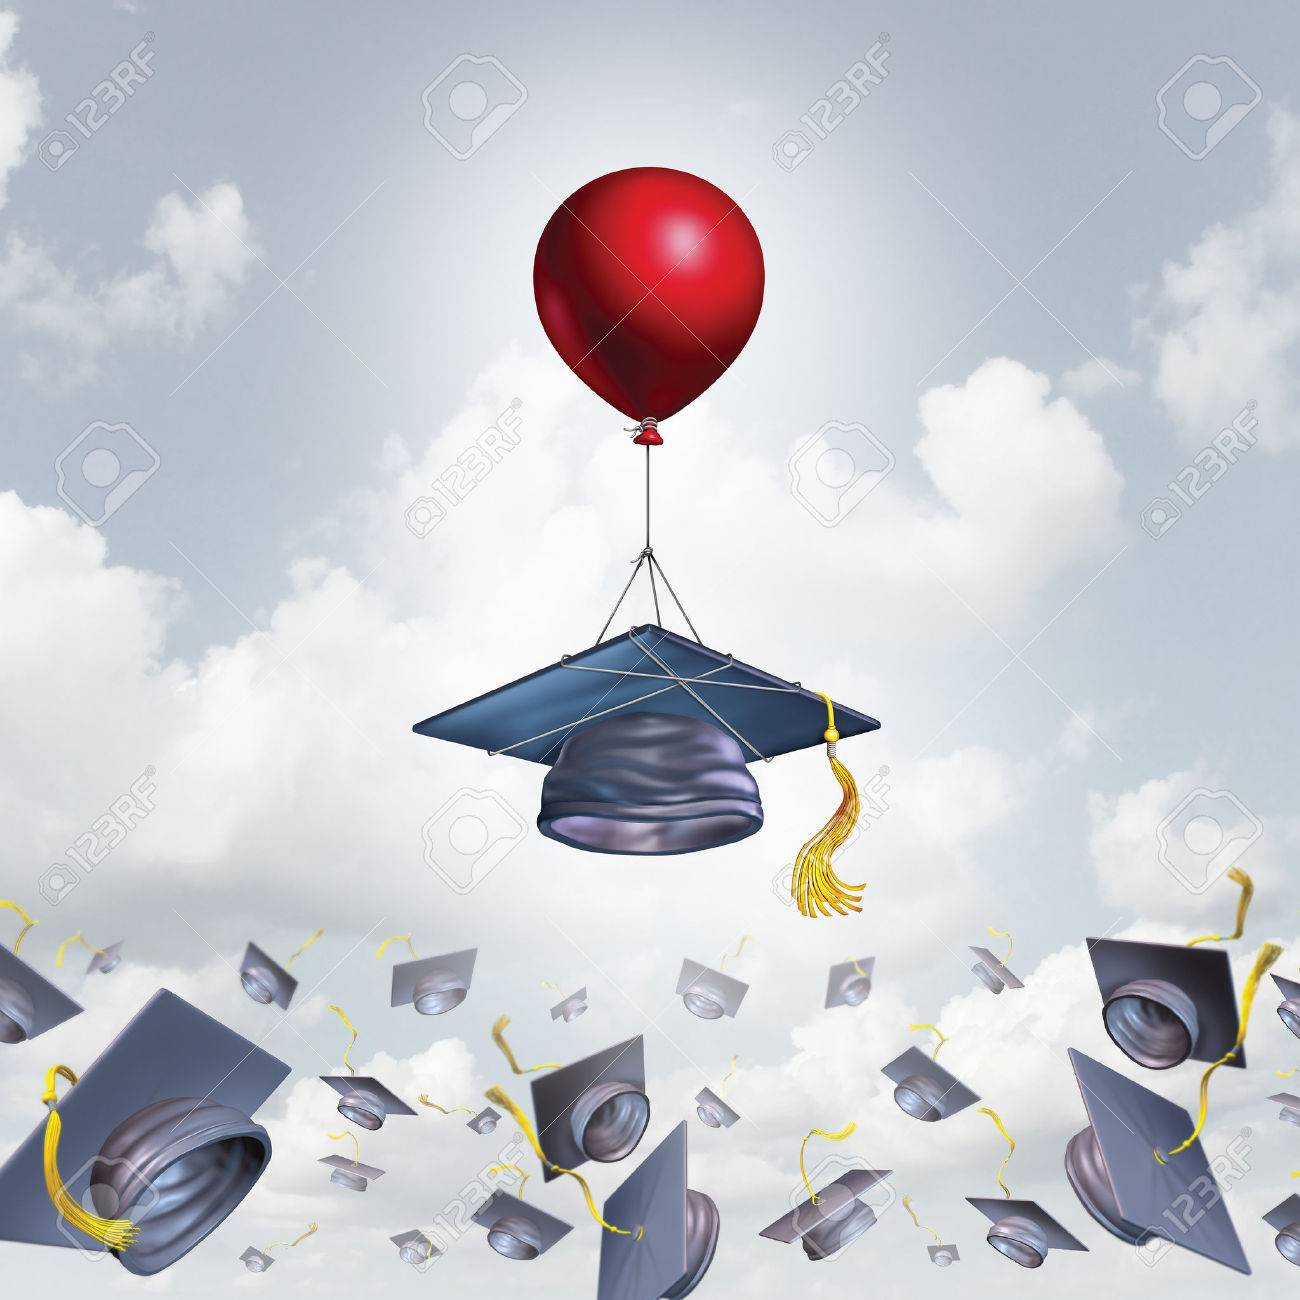 School support and college graduation concept and scholarship school support and college graduation concept and scholarship symbol as a mortarboard or graduate cap being biocorpaavc